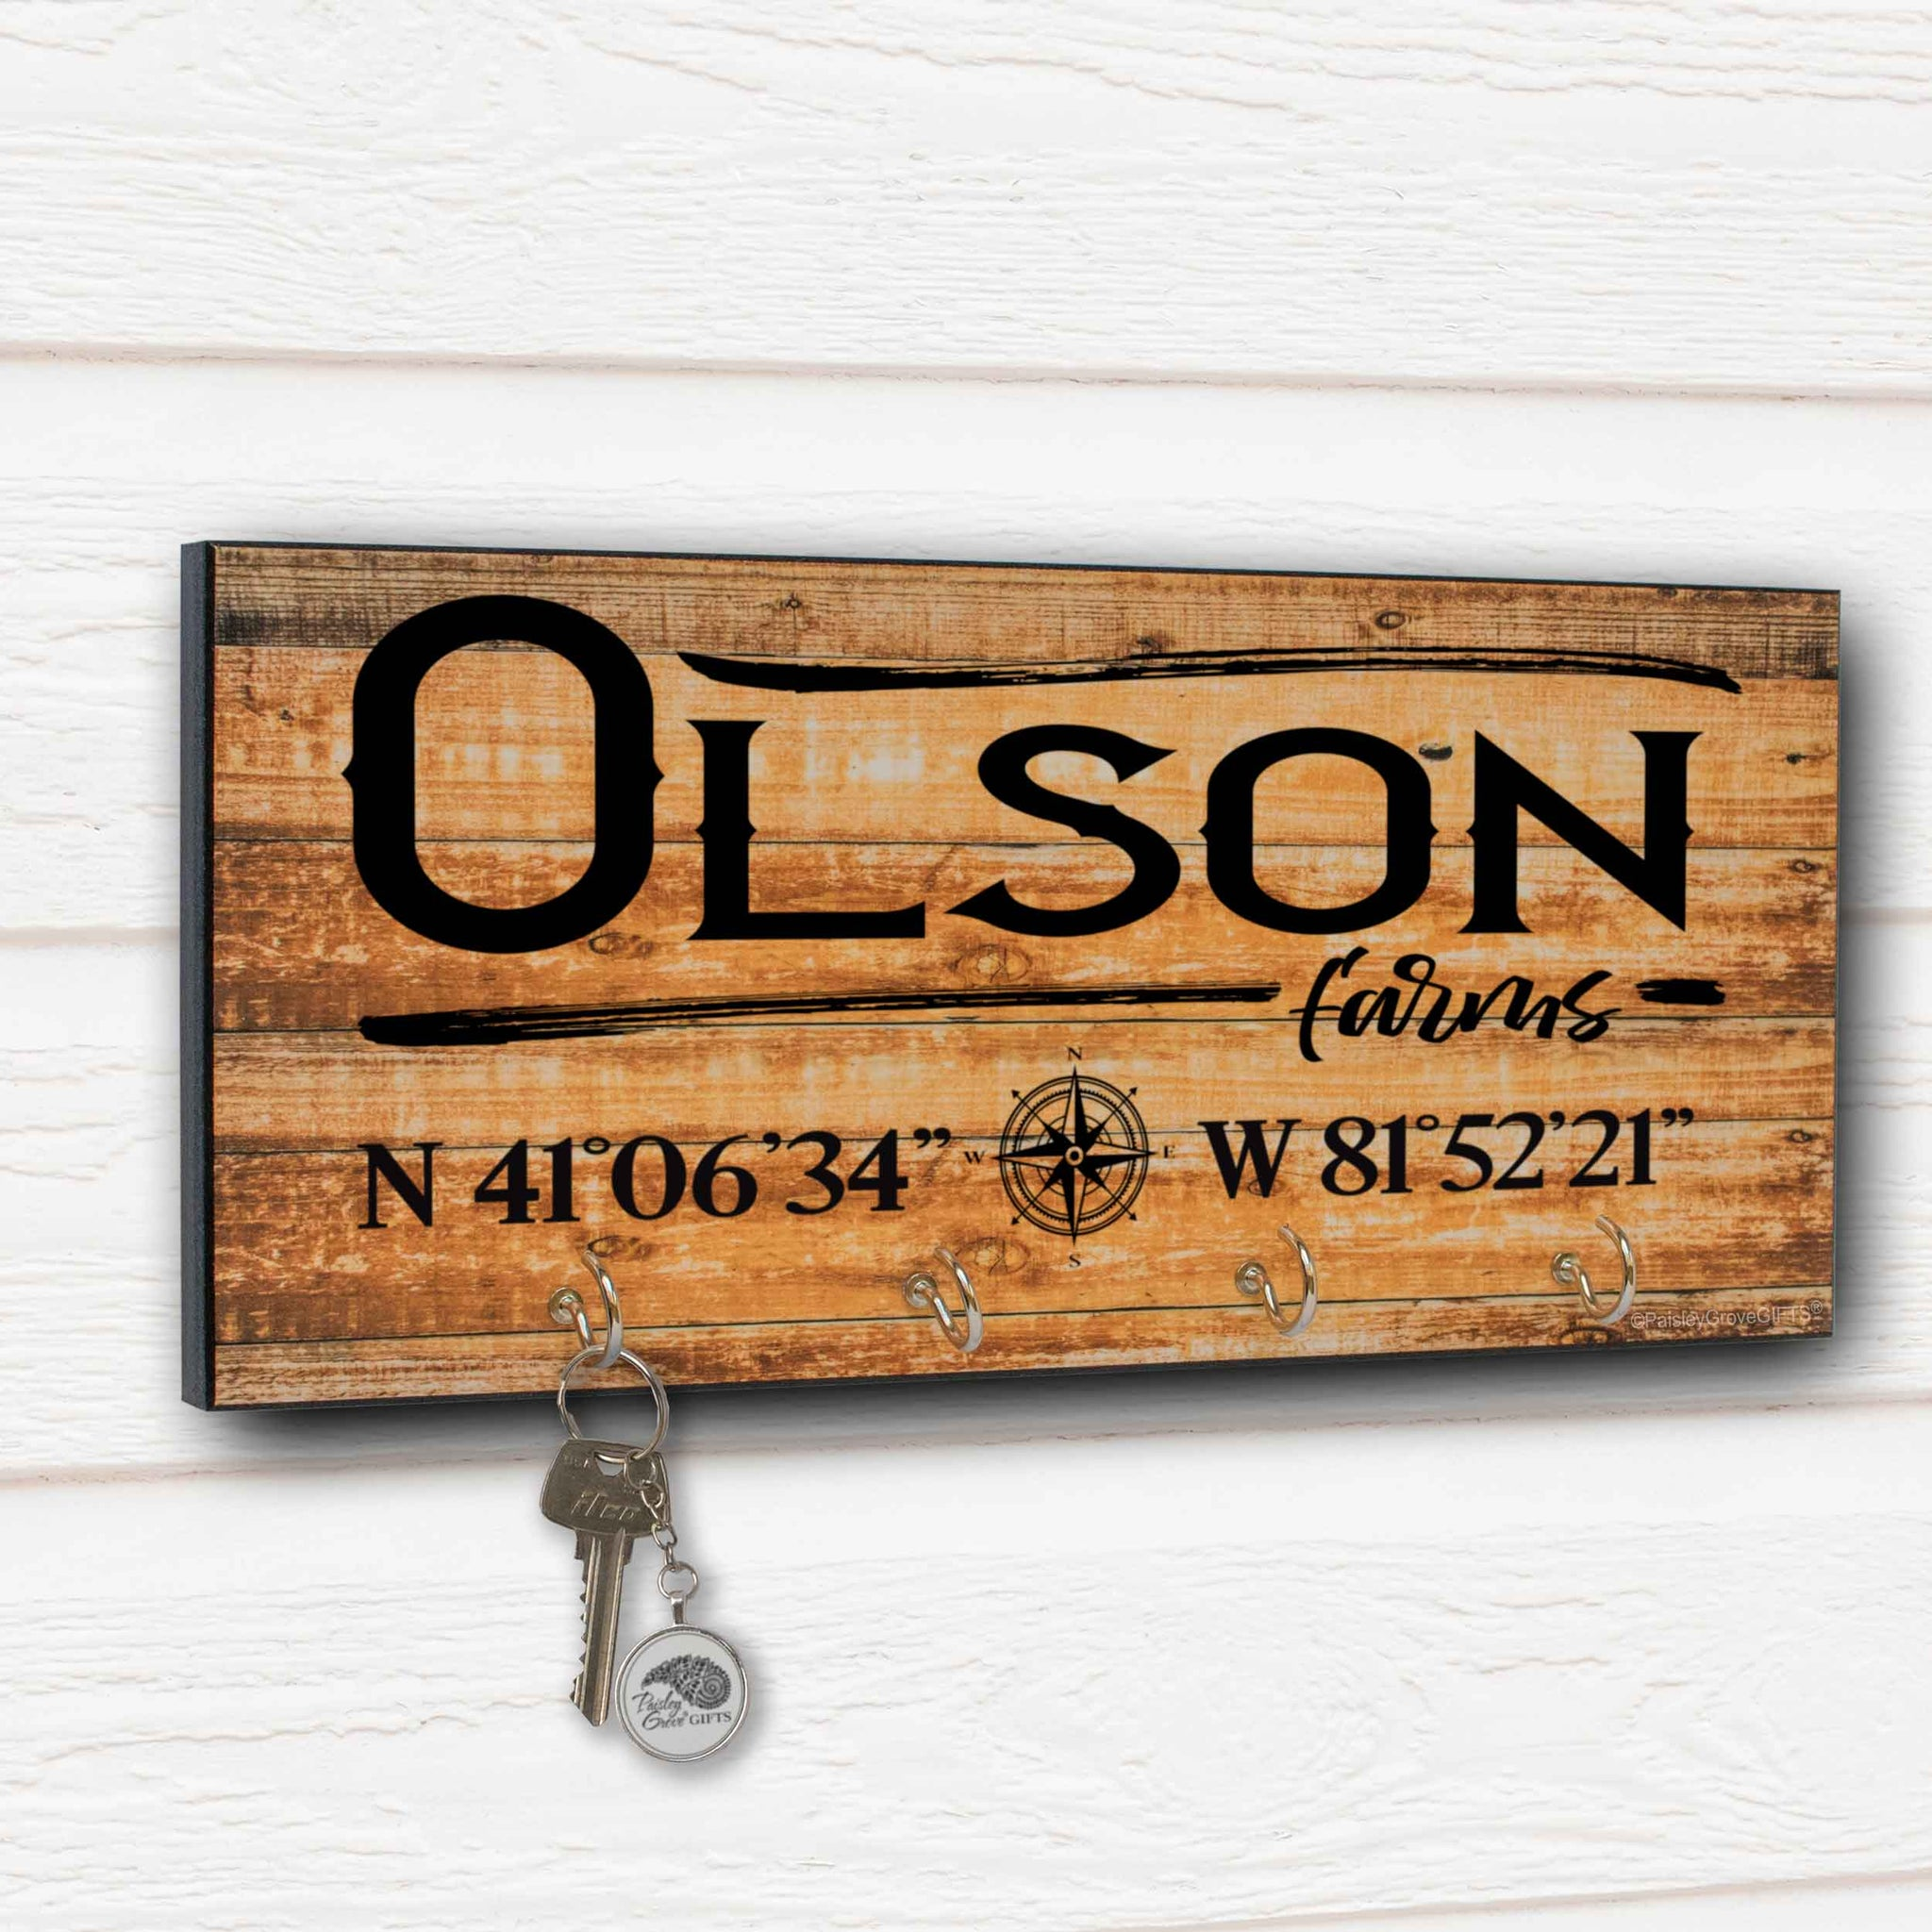 Personalized Farm Key Holder for Wall with Coordinates - S303e